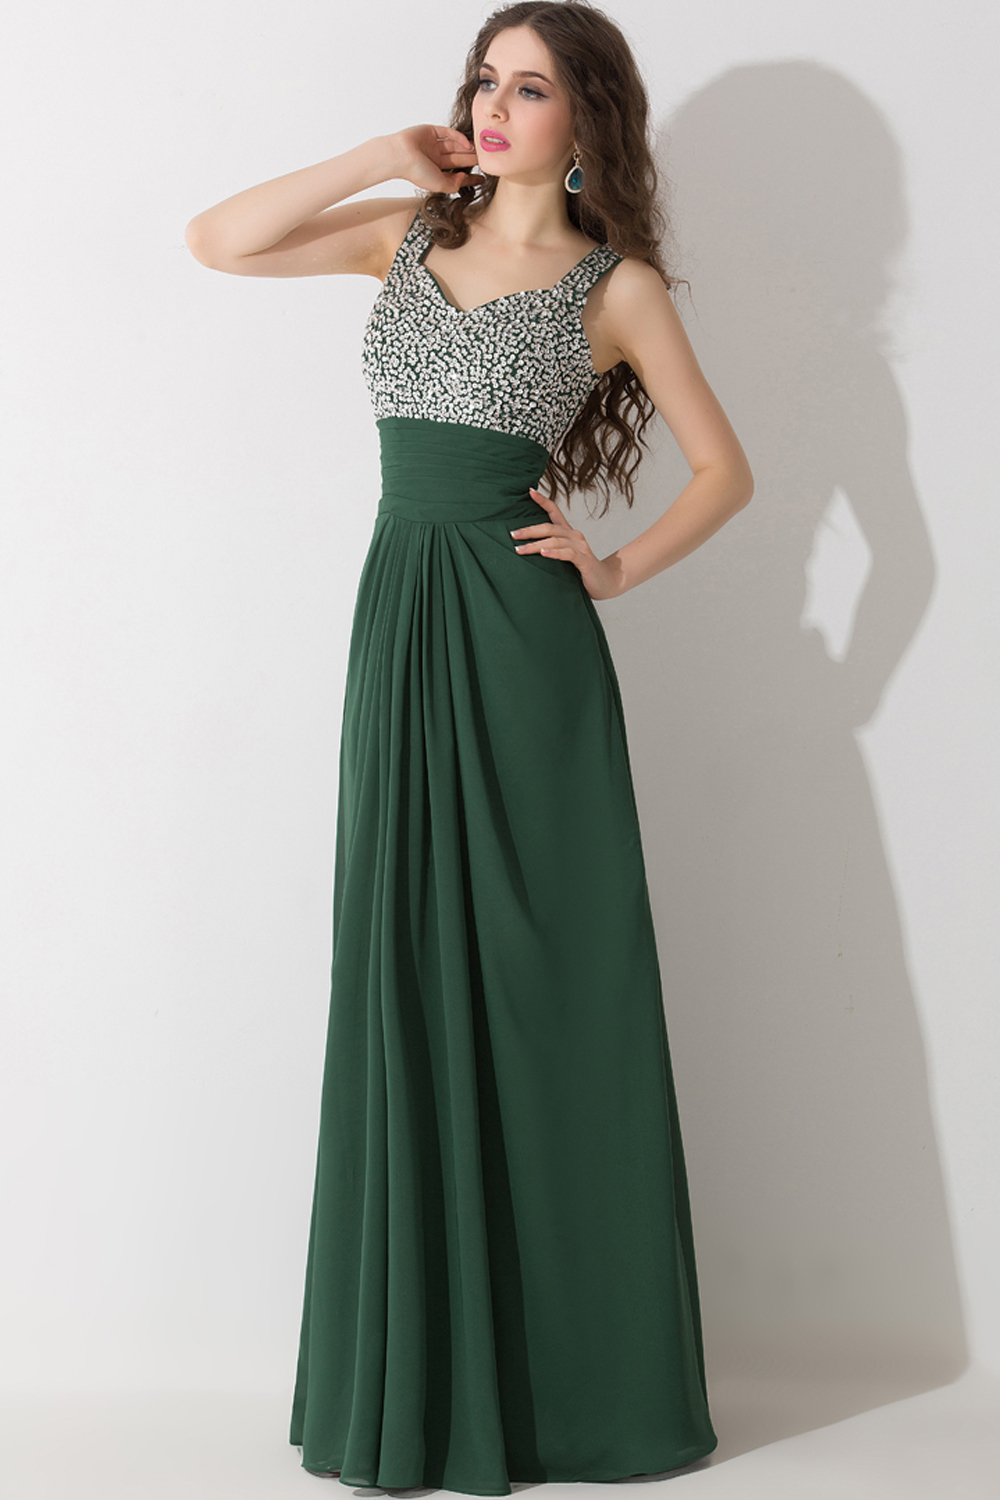 A-Line/Princess Spaghetti Floor Length Chiffon Prom Dresses With Beads